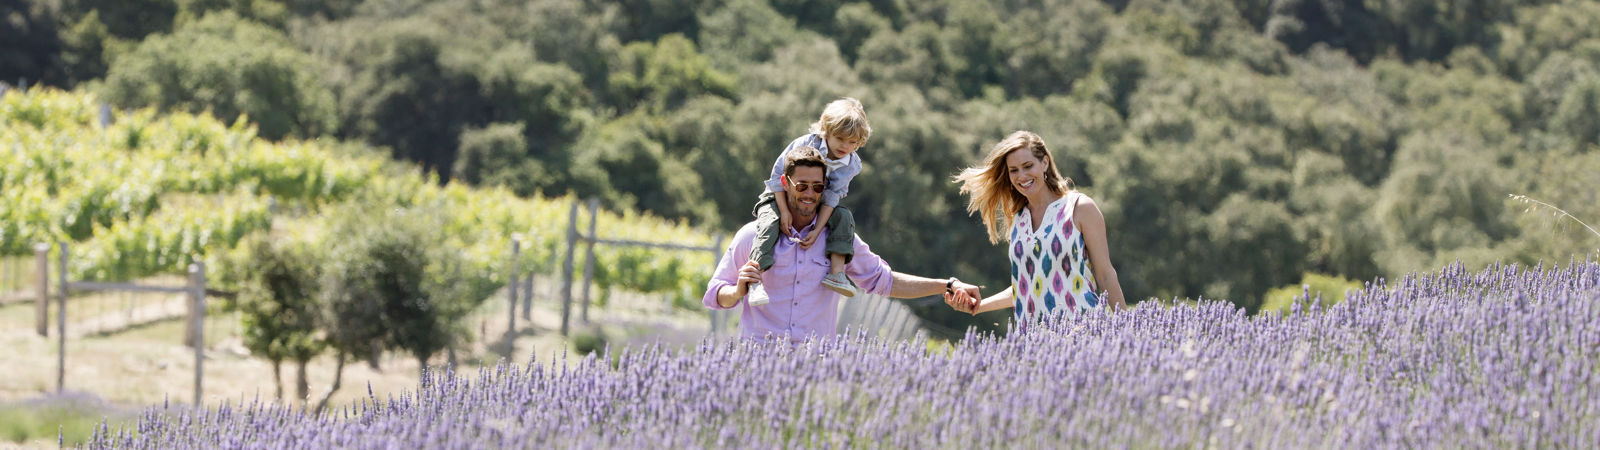 Carmel Valley Ranch_Lifestyle_family in lavender field